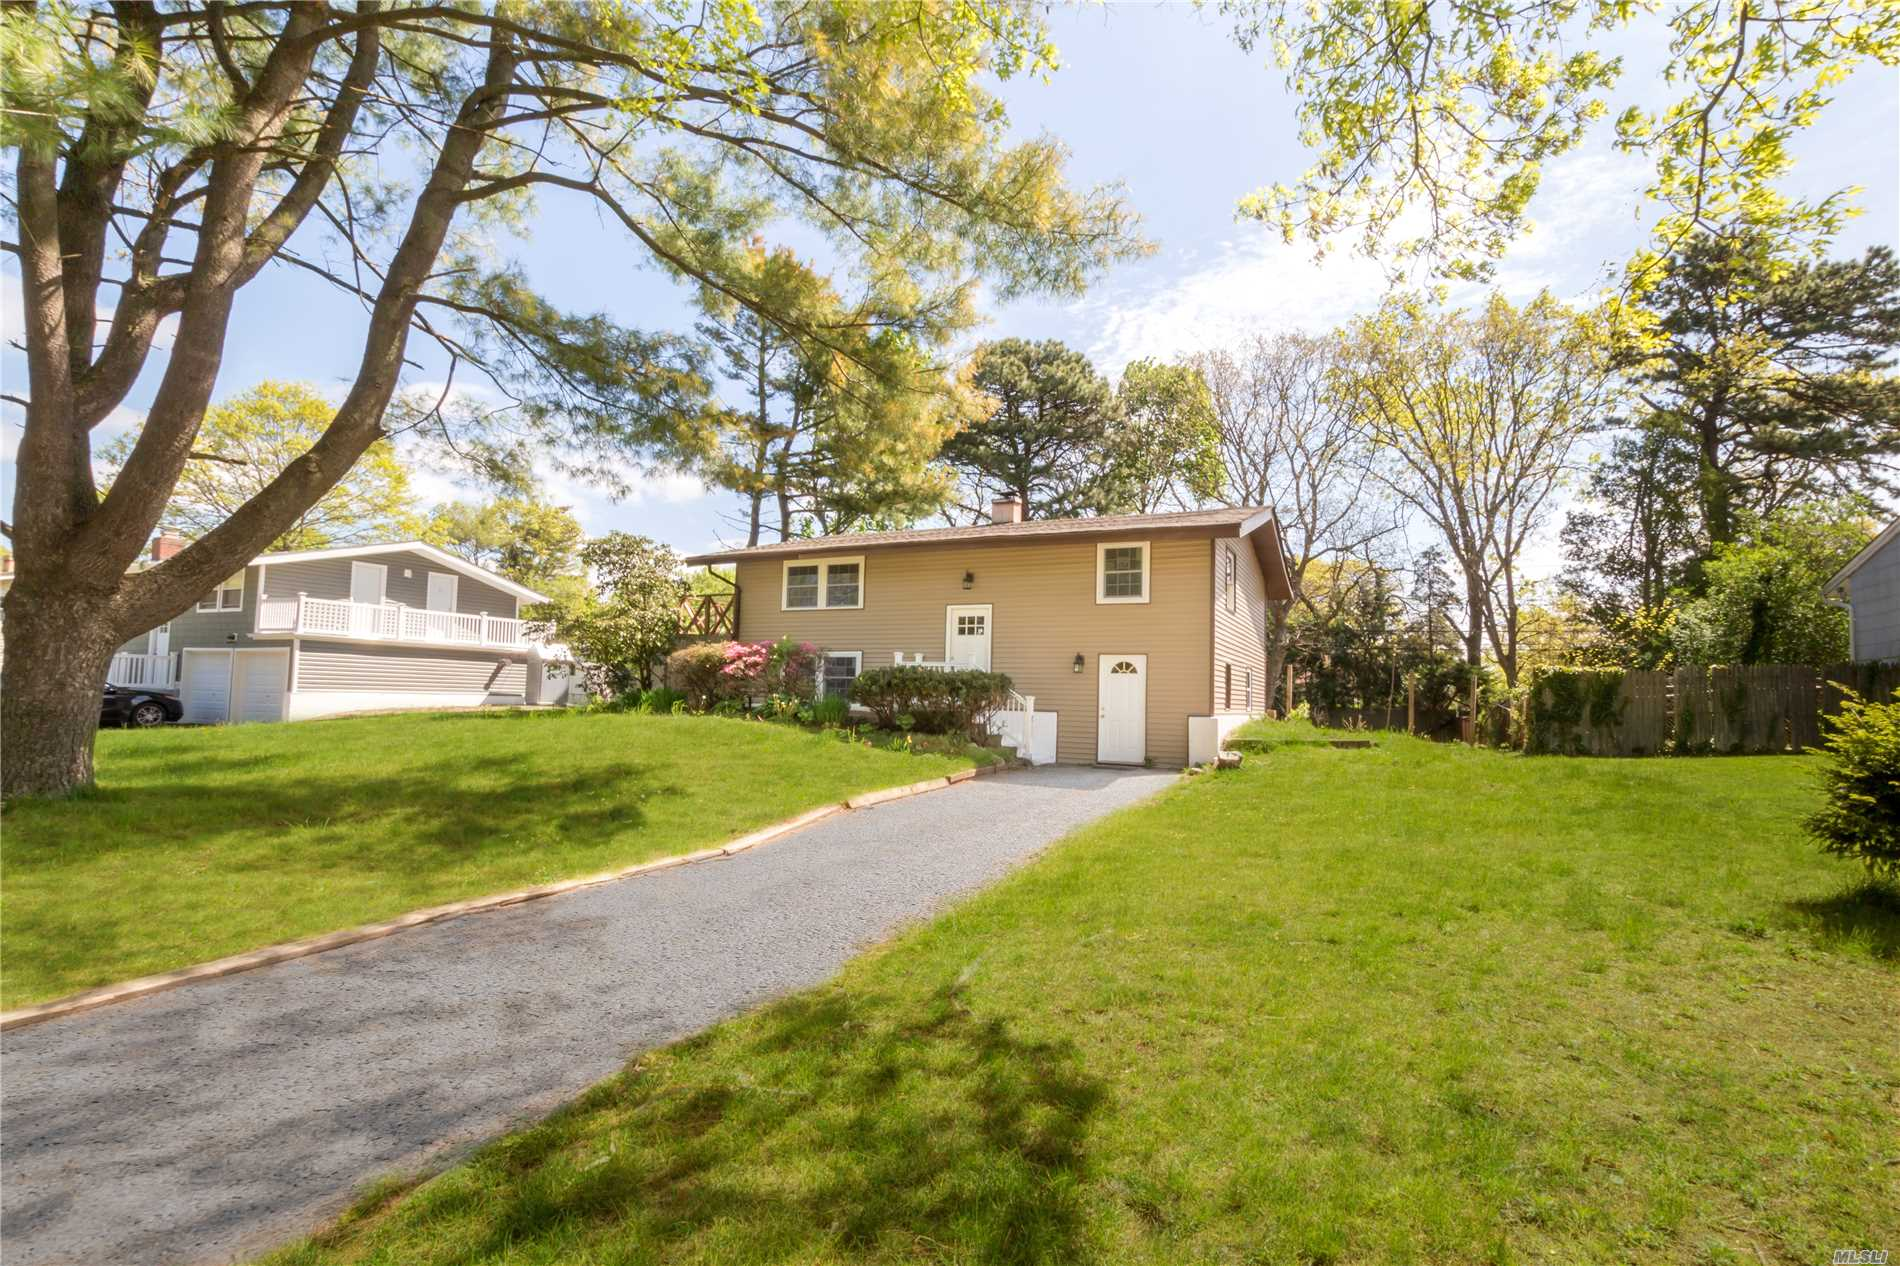 Newly Renovated Turn key Home !! ,  Come see this Wideline Hi Ranch in the Village of Islandia. This Home Features 5/6 bedrooms,  New Kitchen & Baths New Heating, New Windows, New Siding/Roof, Big Yard & More. Plenty of Room, Ready for unpacking. Get in quickly to see today .